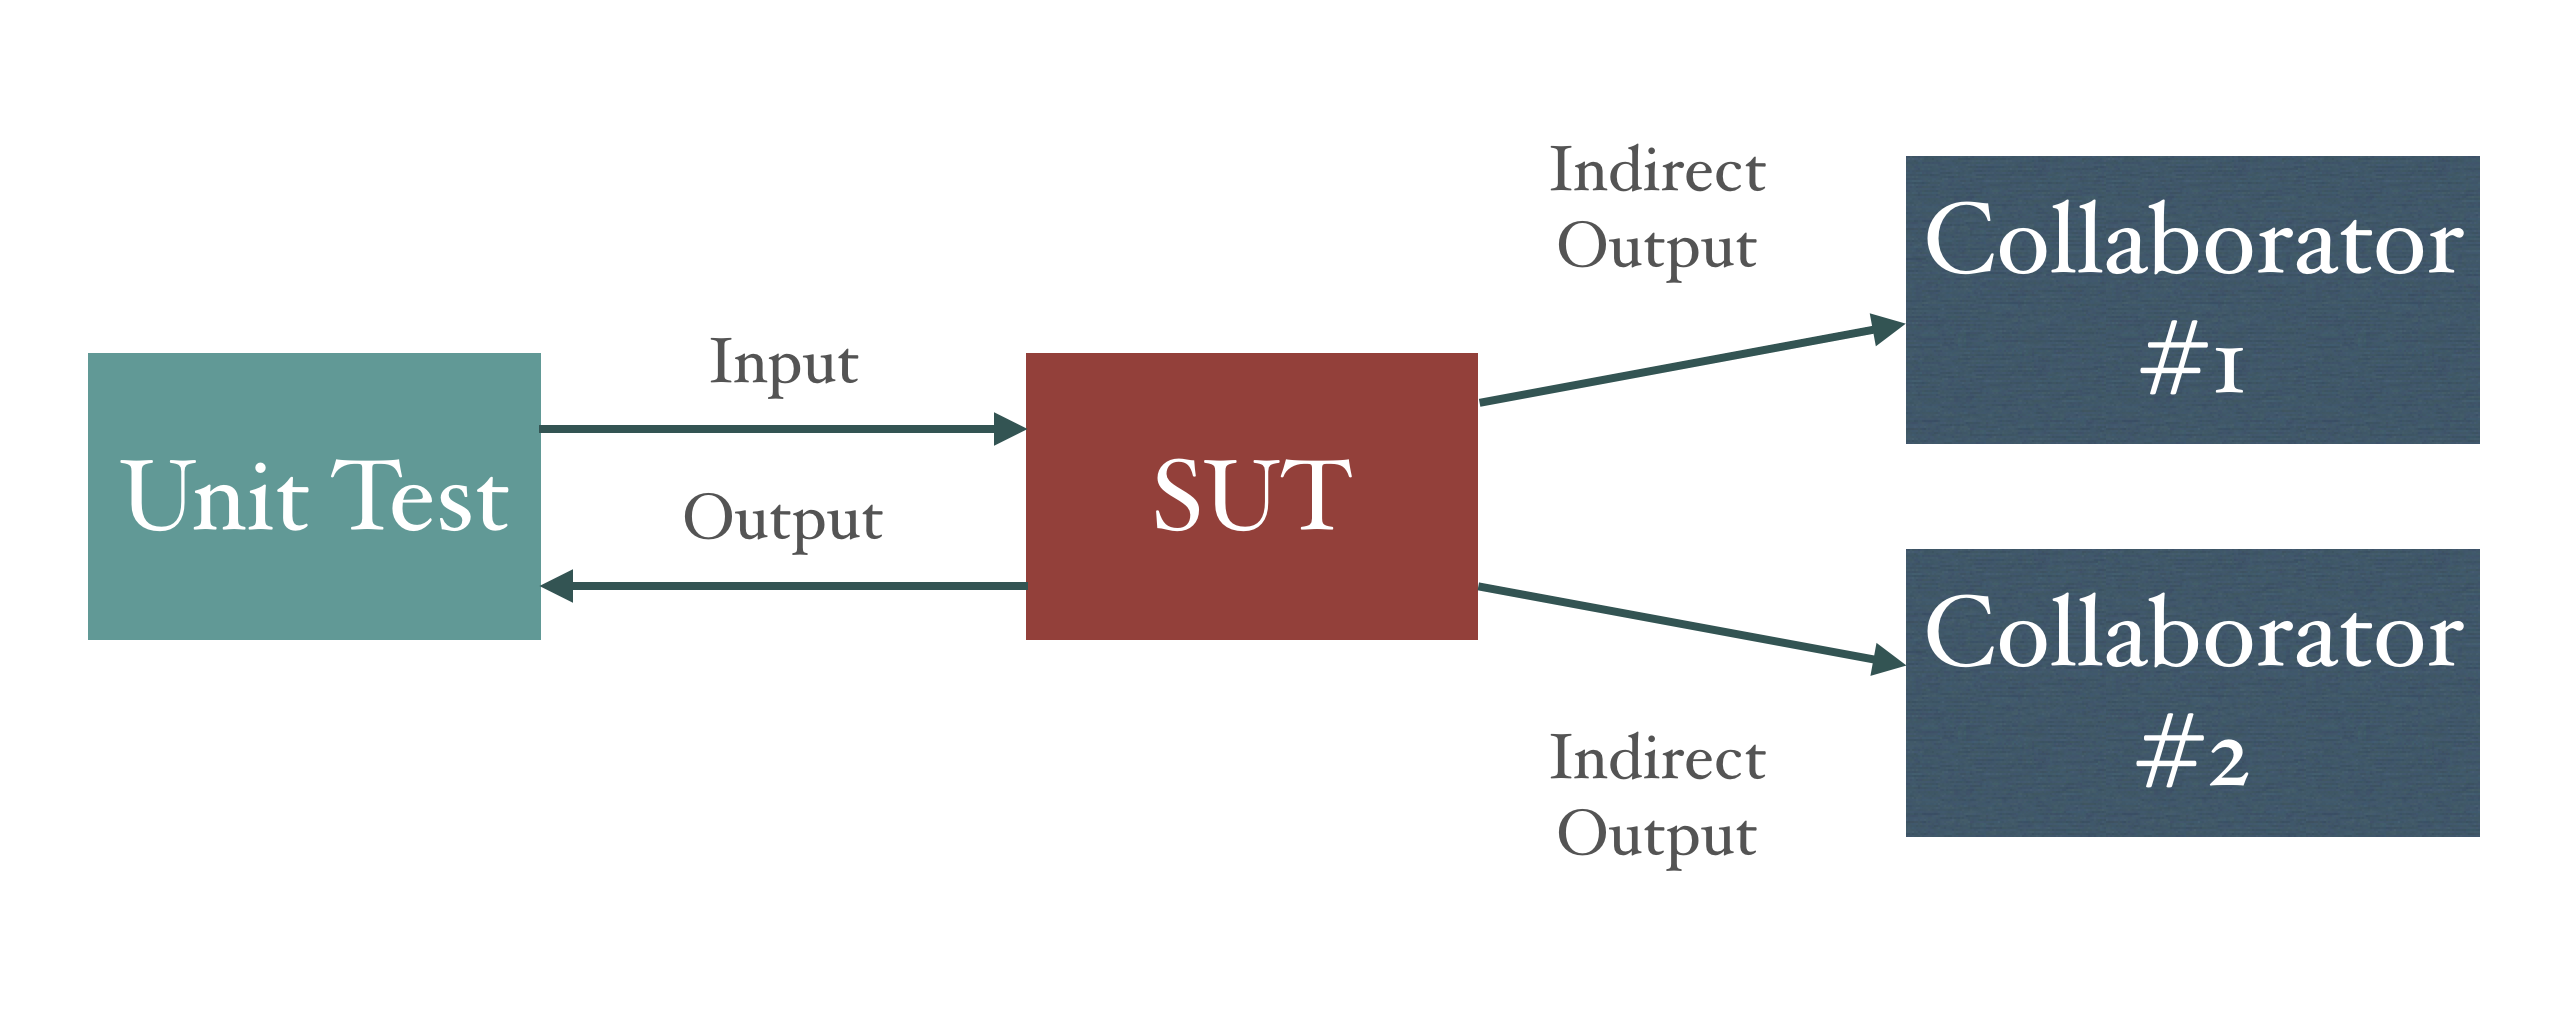 Visualisation of indirect utputs